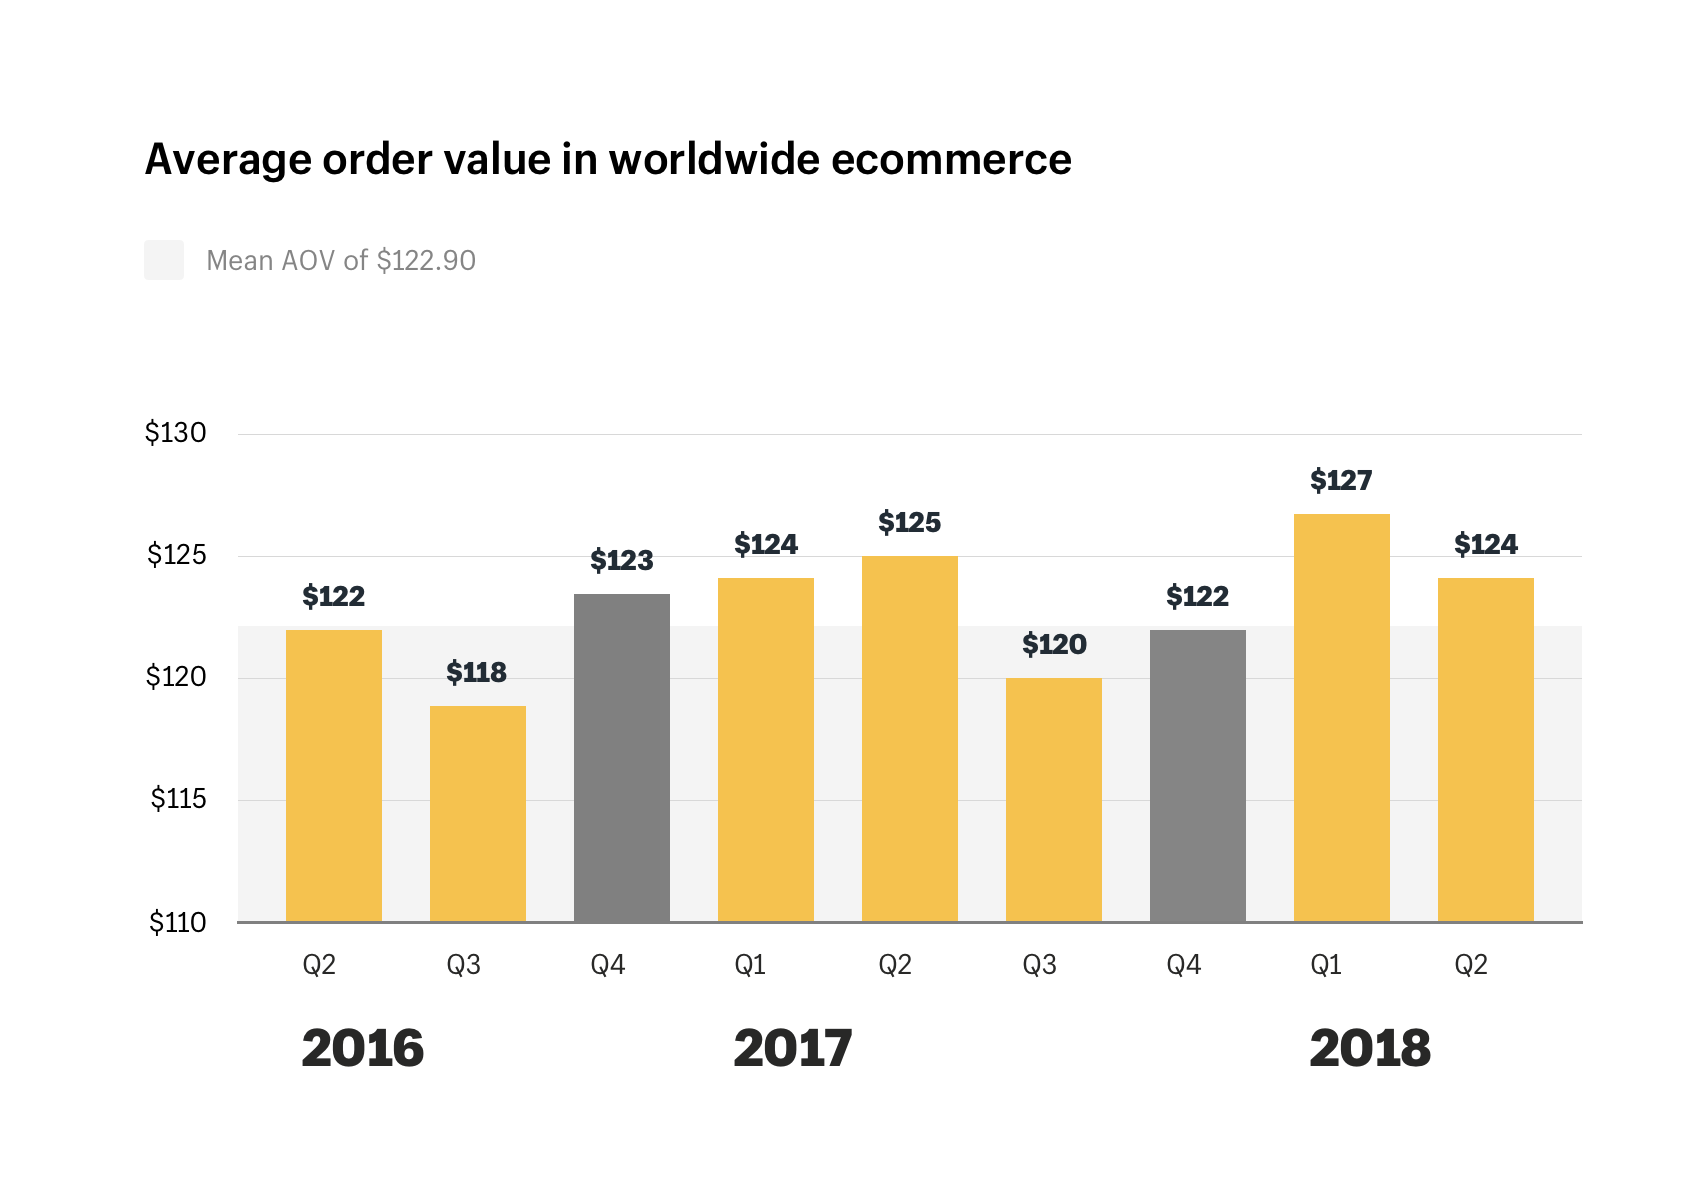 Average order value in worldwide ecommerce